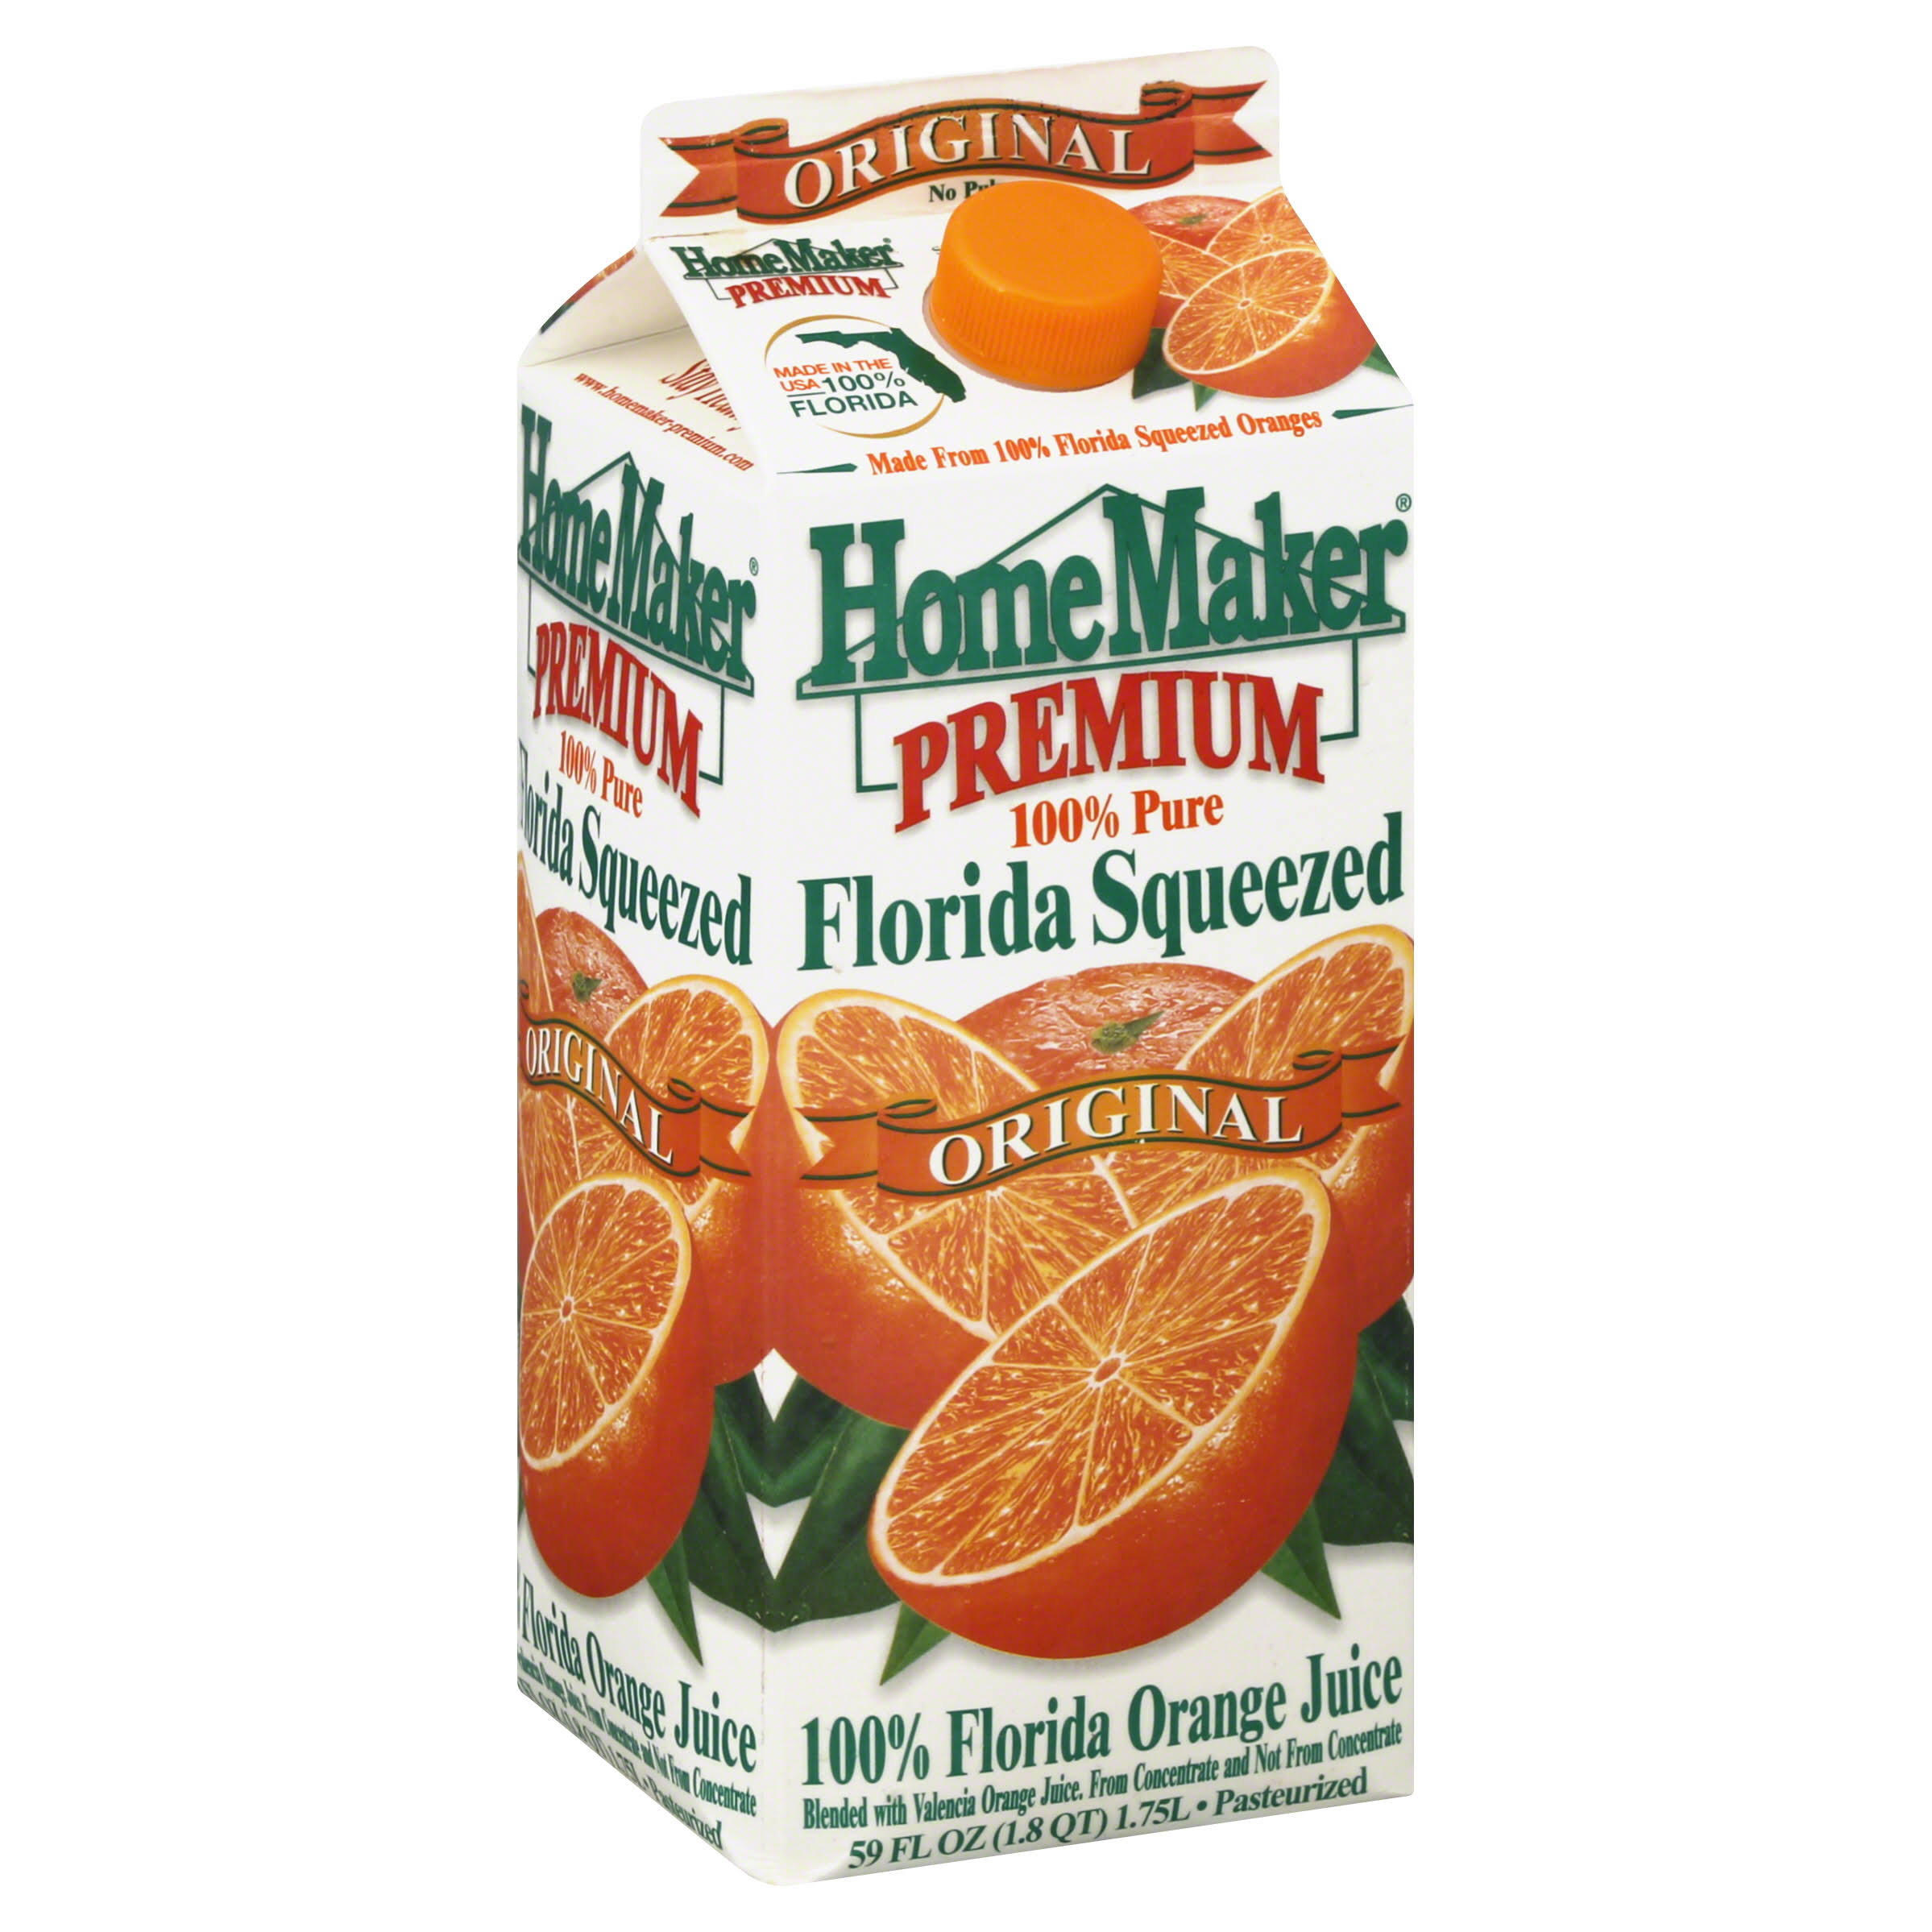 HomeMaker Premium Florida Squeezed Original Orange Juice - 59oz